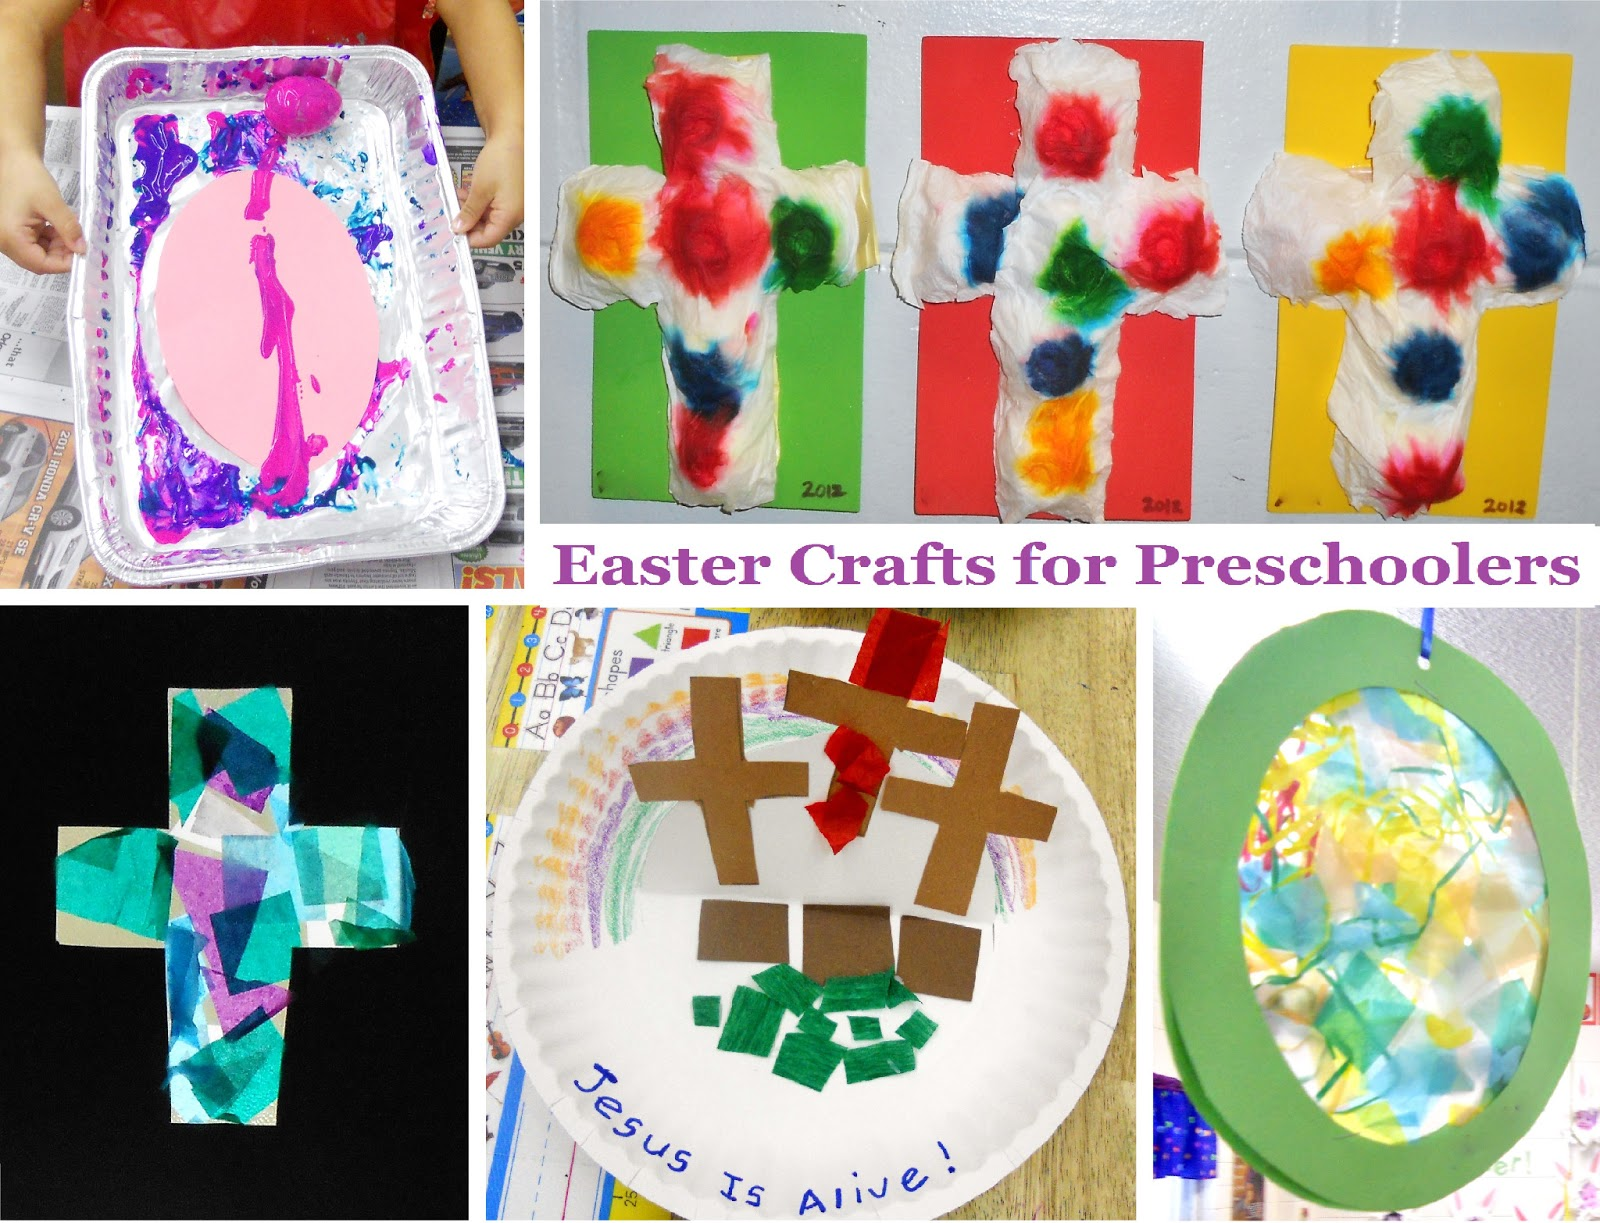 4 Easter Crafts For Preschoolers